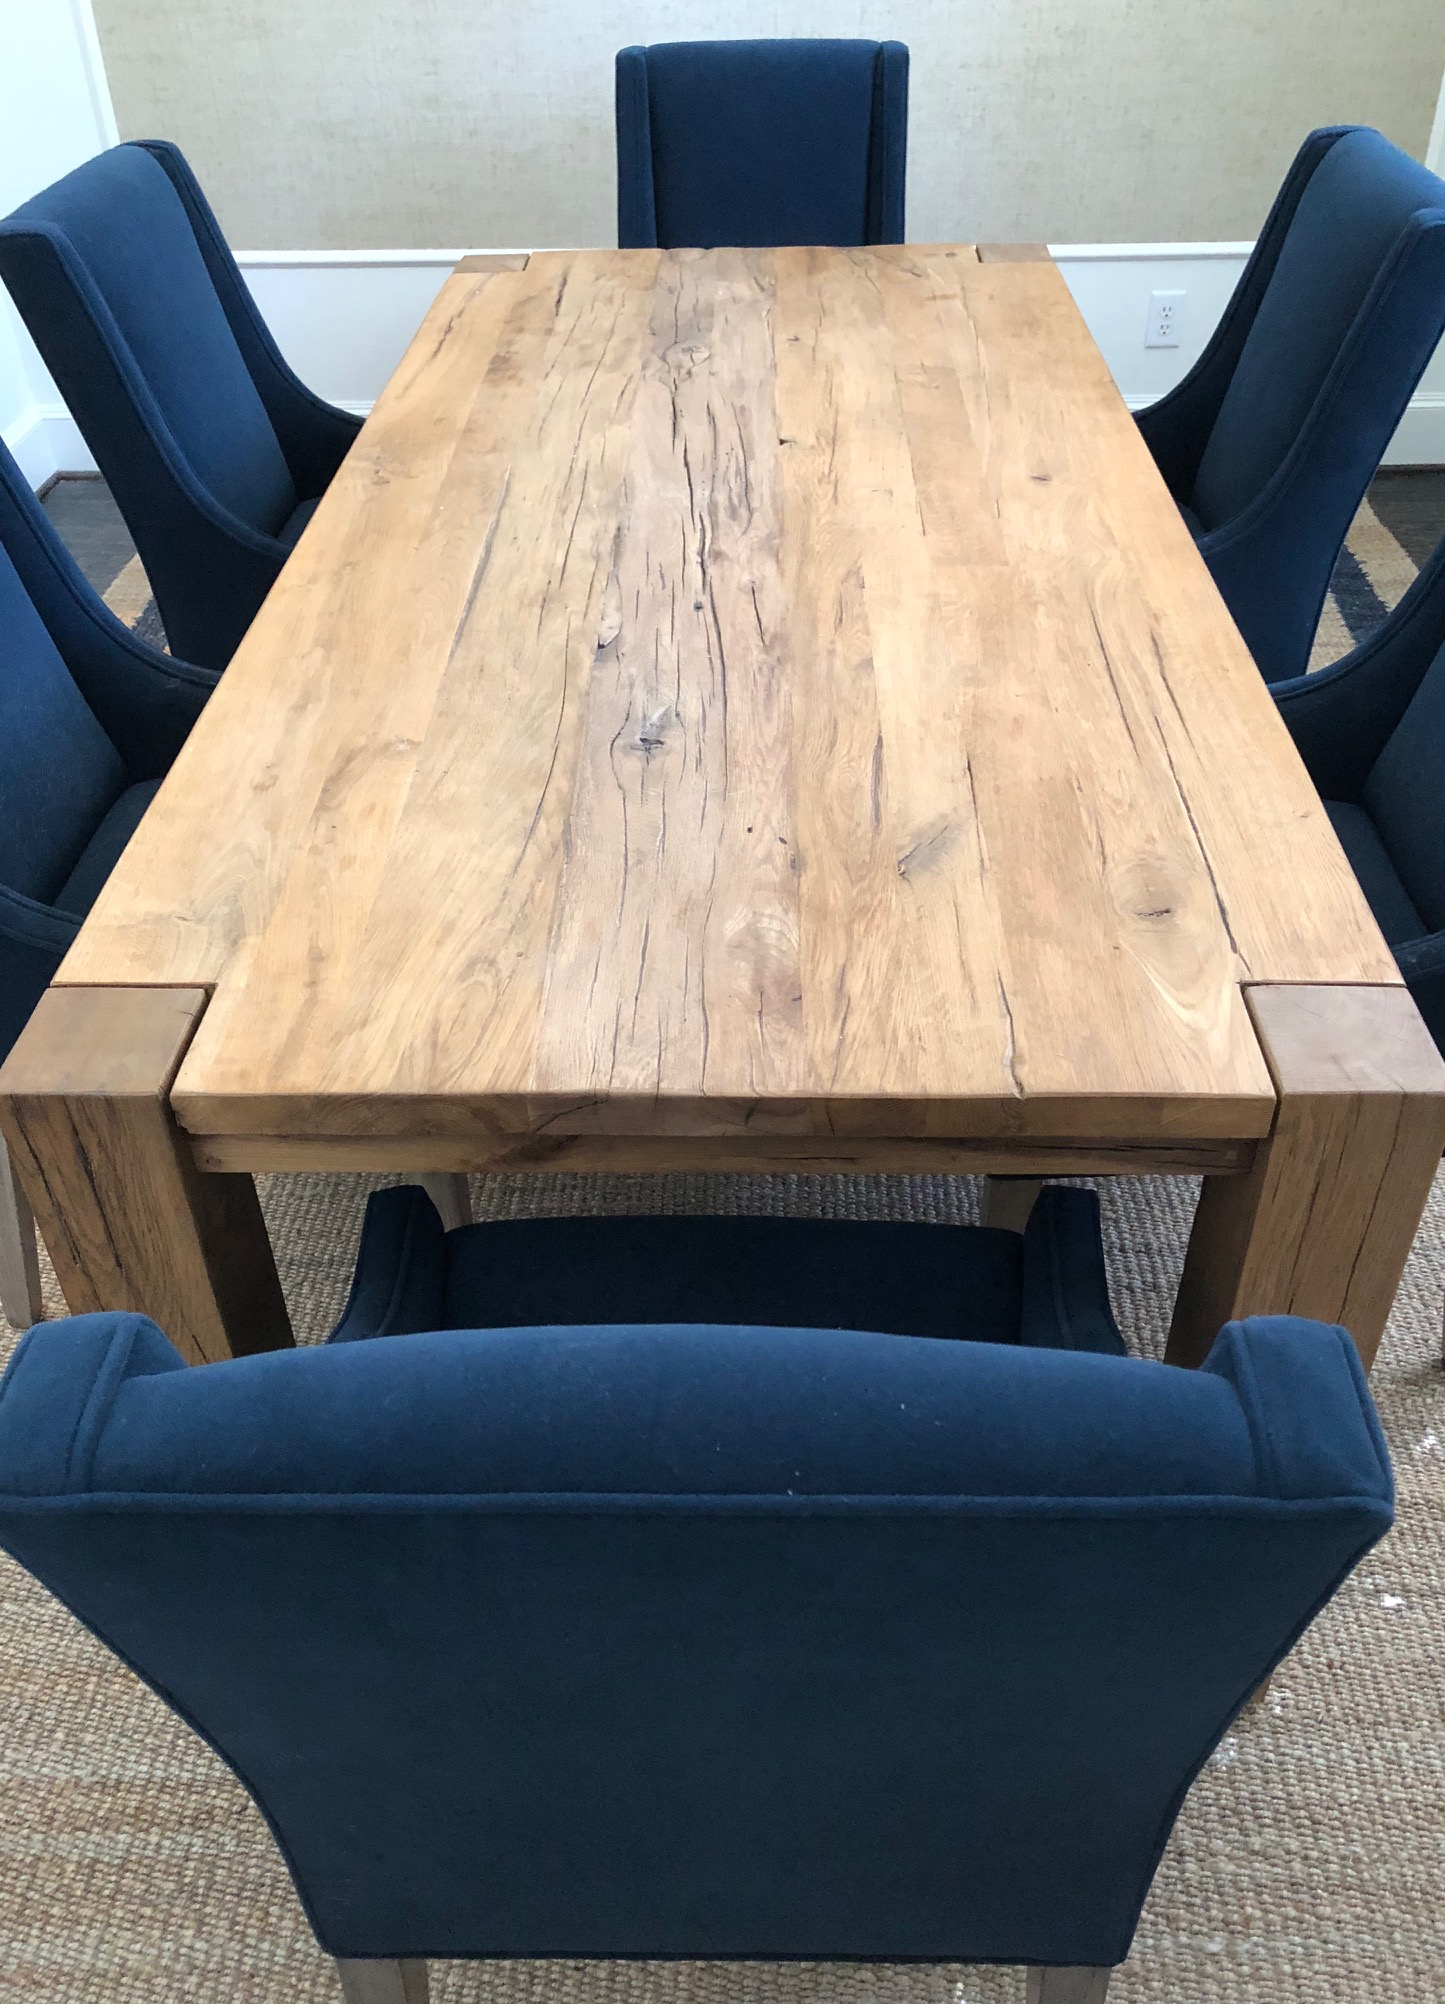 Rustic dining table with navy blue chairs | Dining room, Carla Aston - Designer